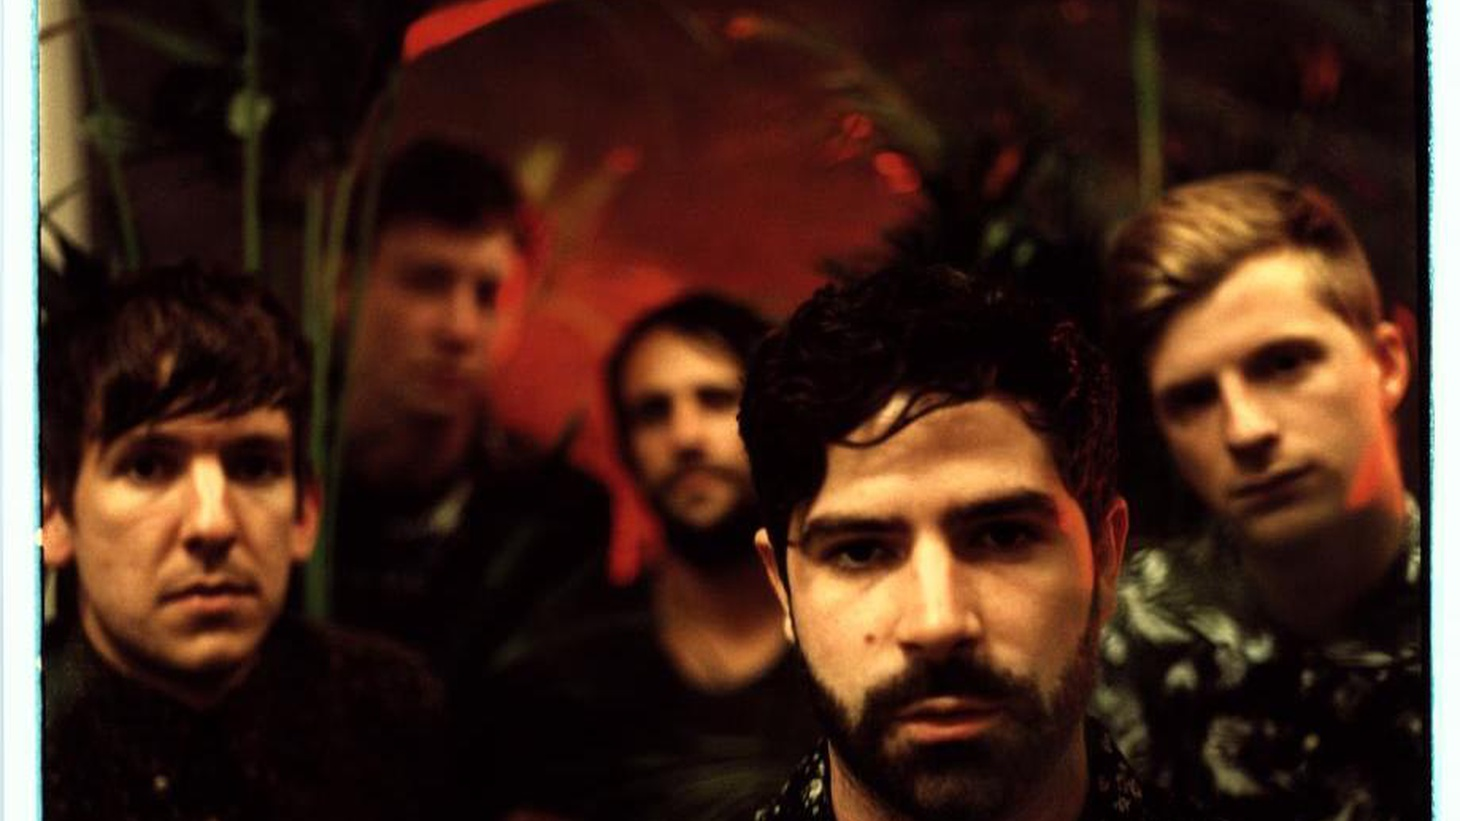 Oxford-based Foals are one of Britain's most successful modern bands. They take a break between their Coachella dates...